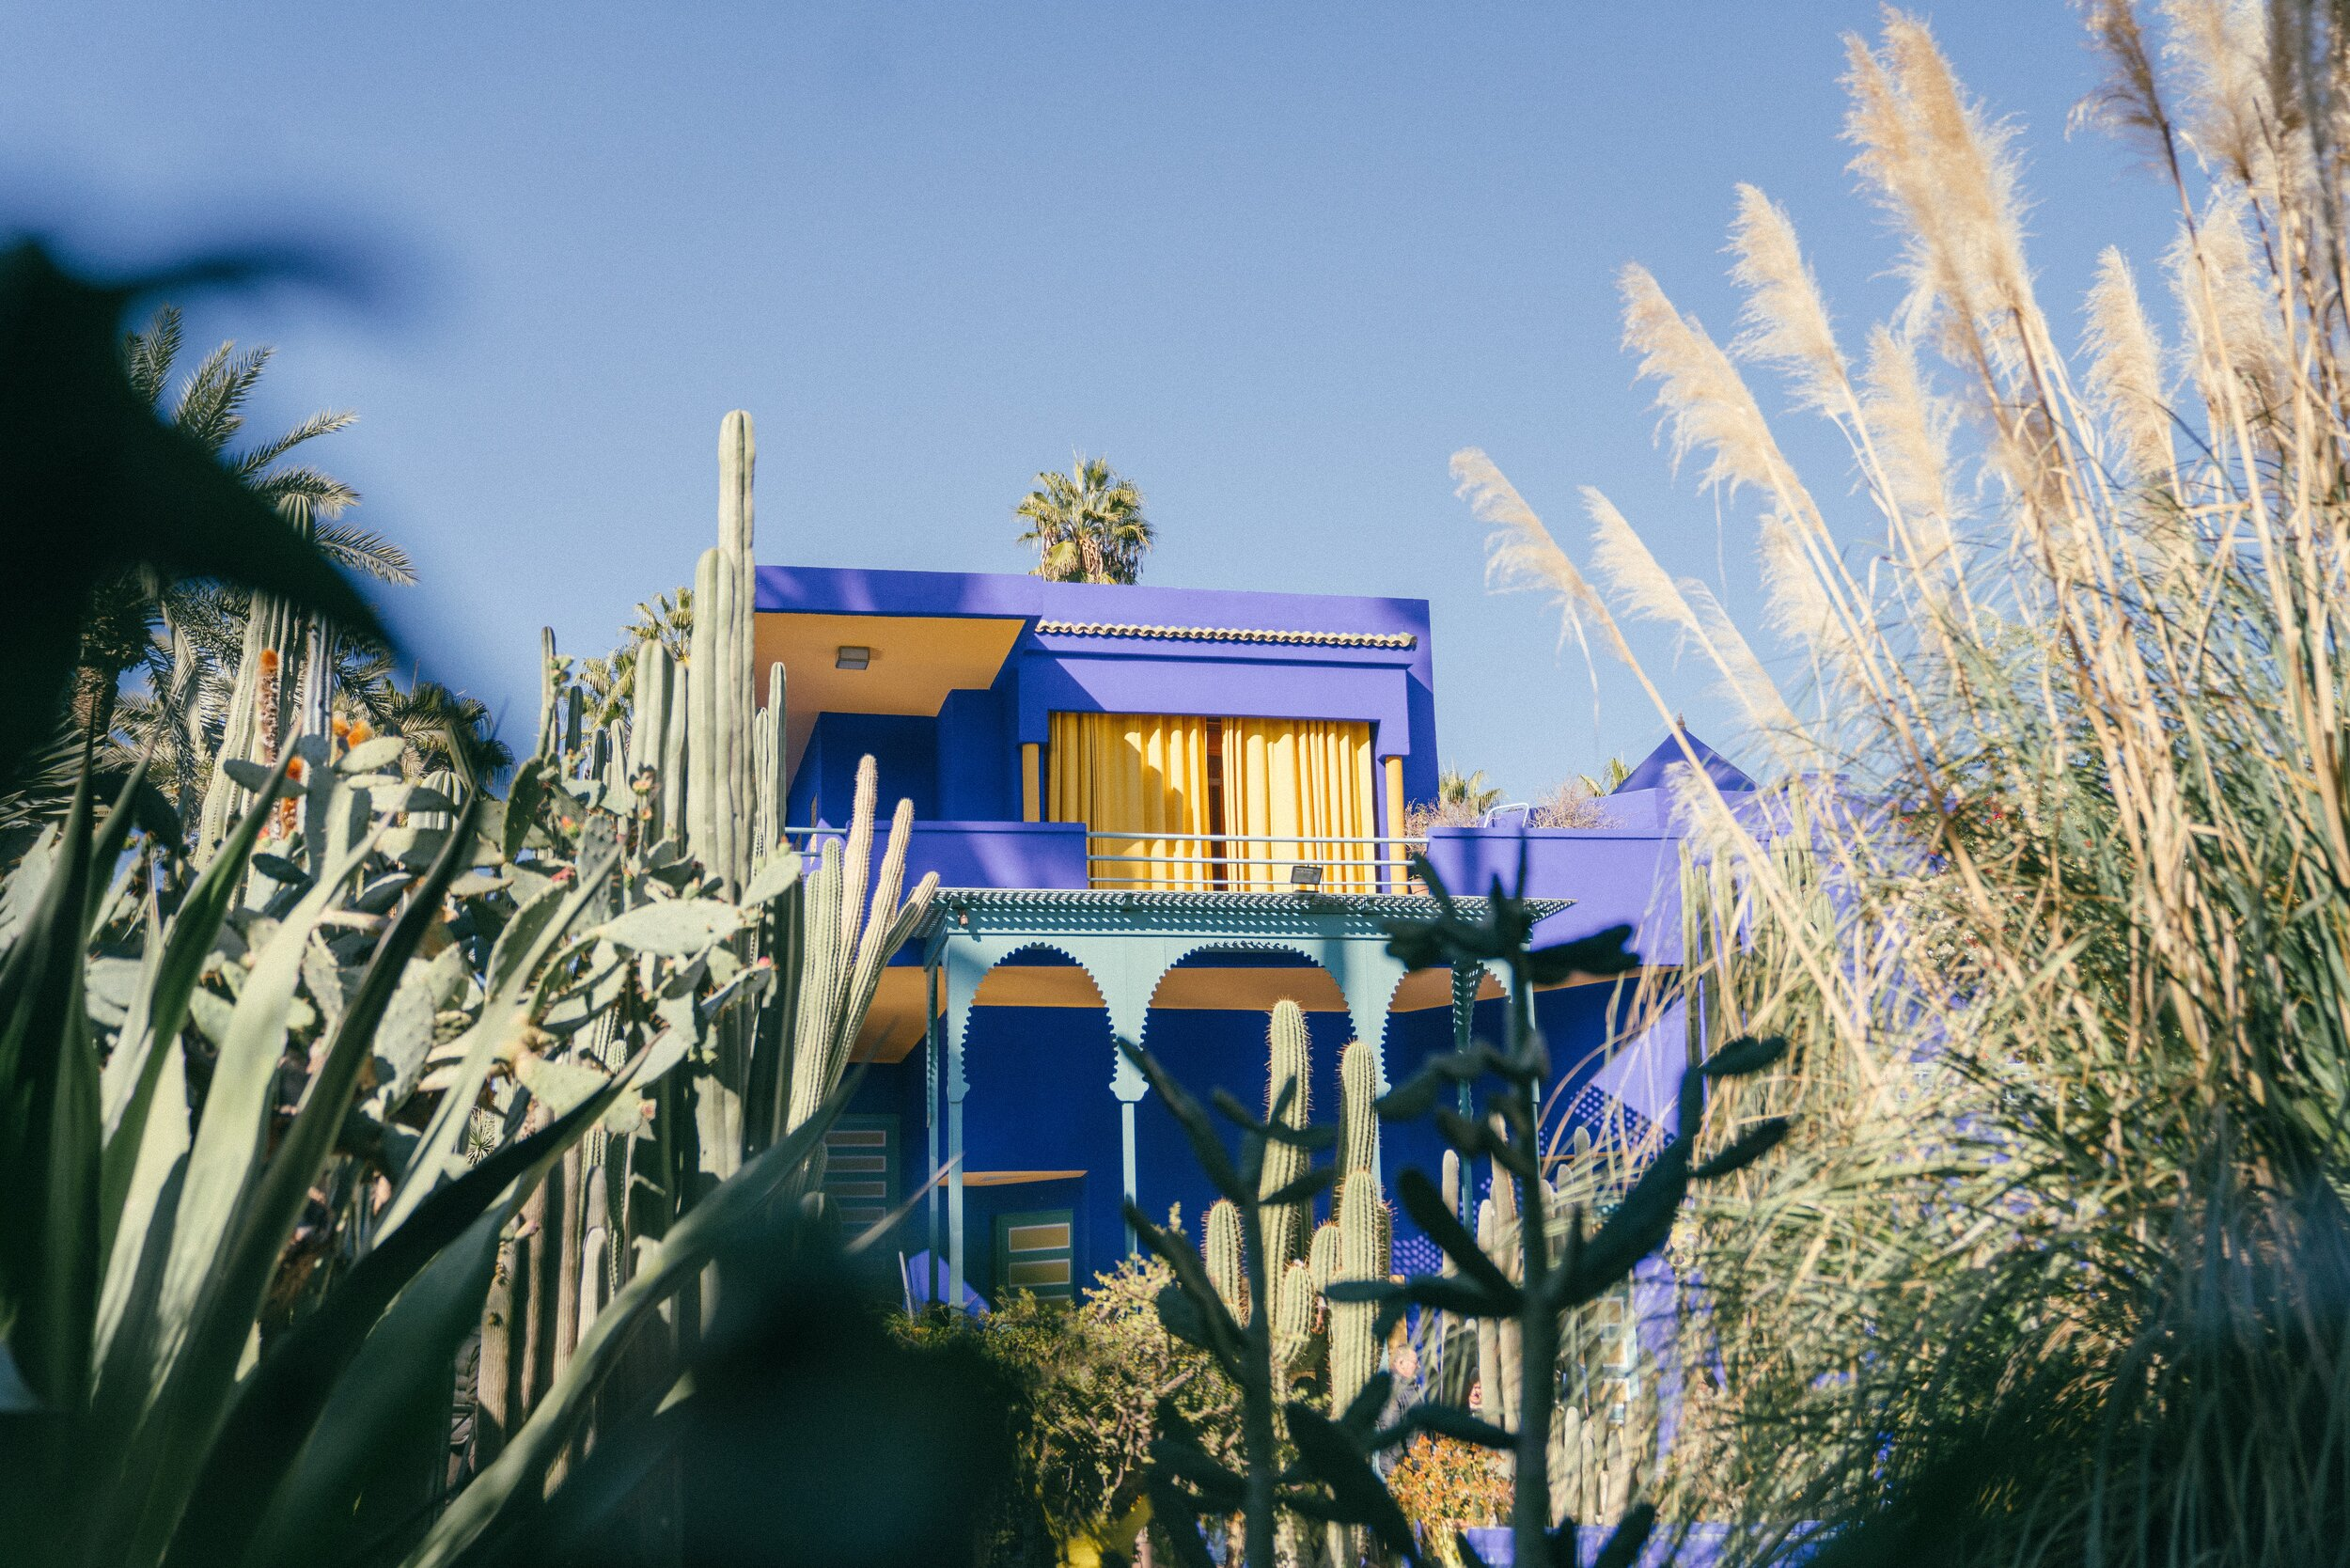 Jardin Majorelle in Marrakech, Morocco - 7 Tips for Taking Photos in Crowded Places